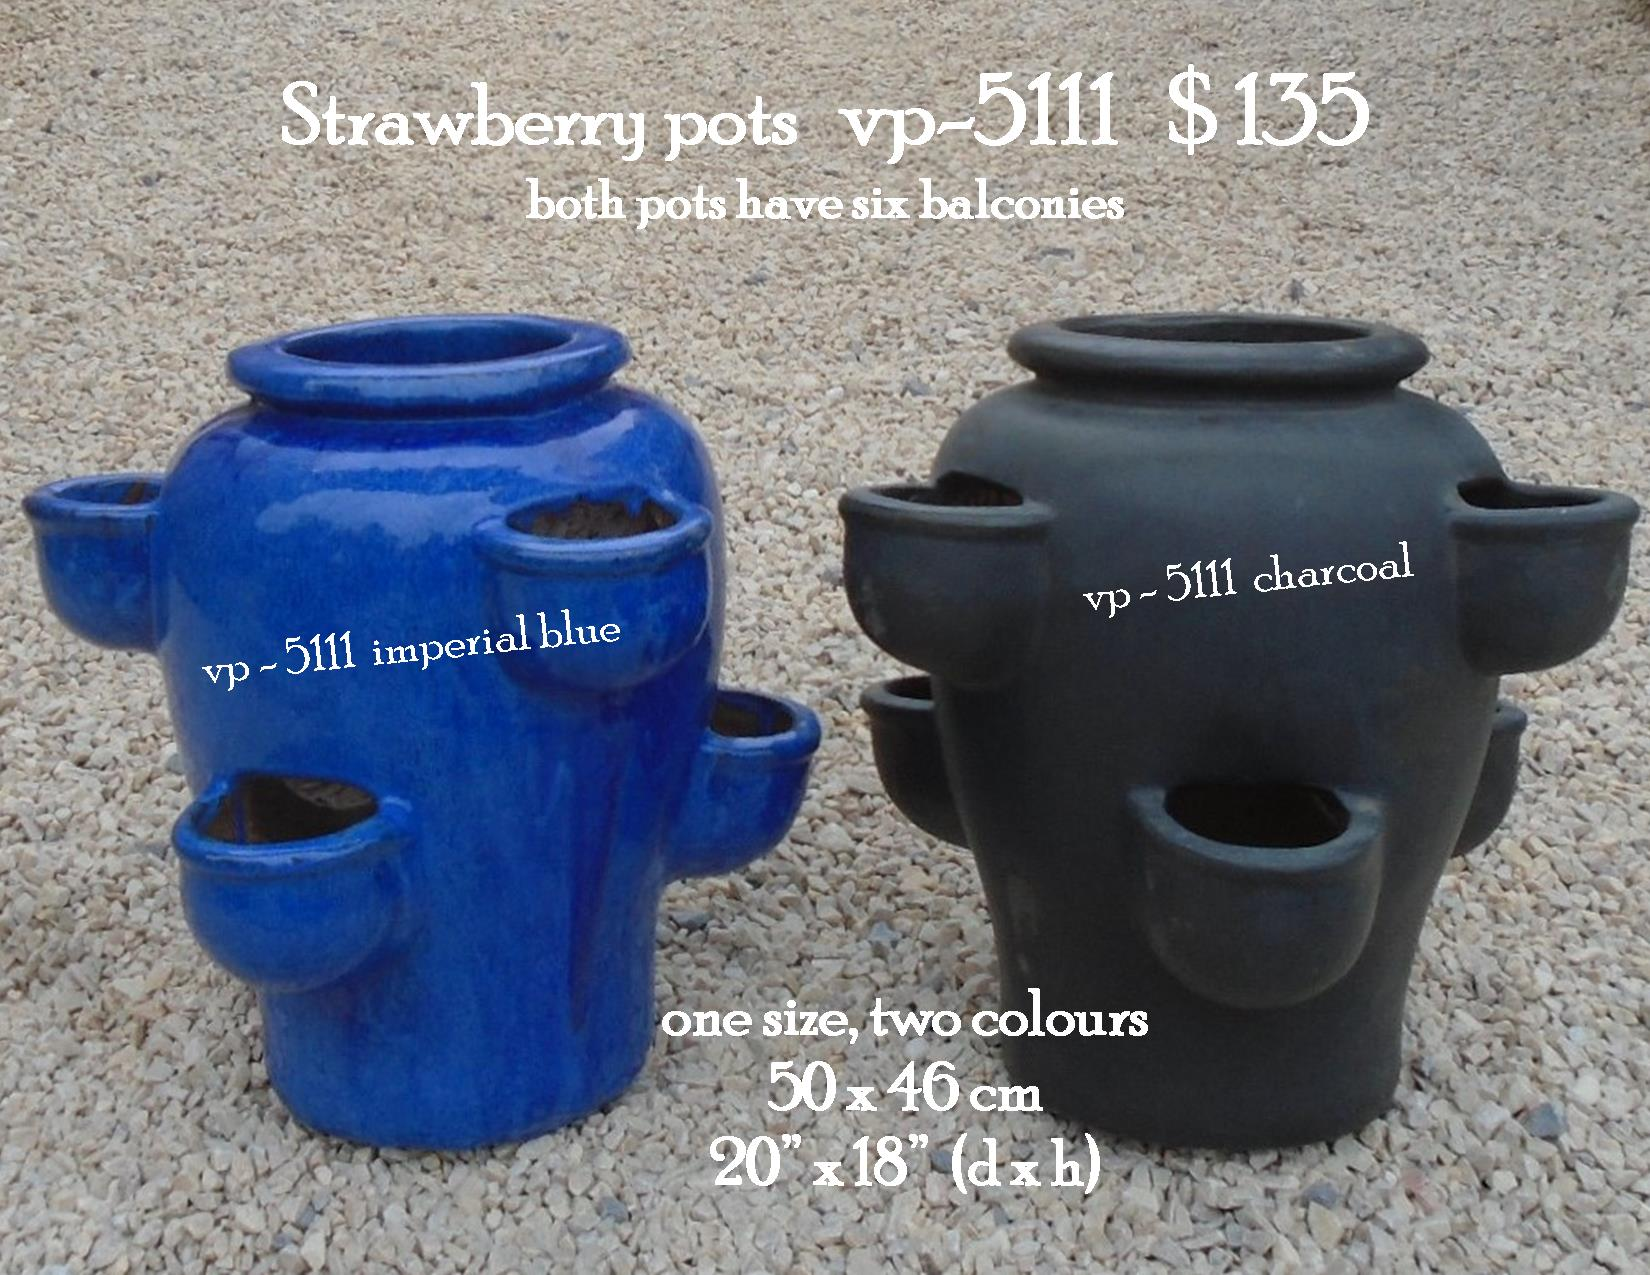 Strawberry pots   vp-5111